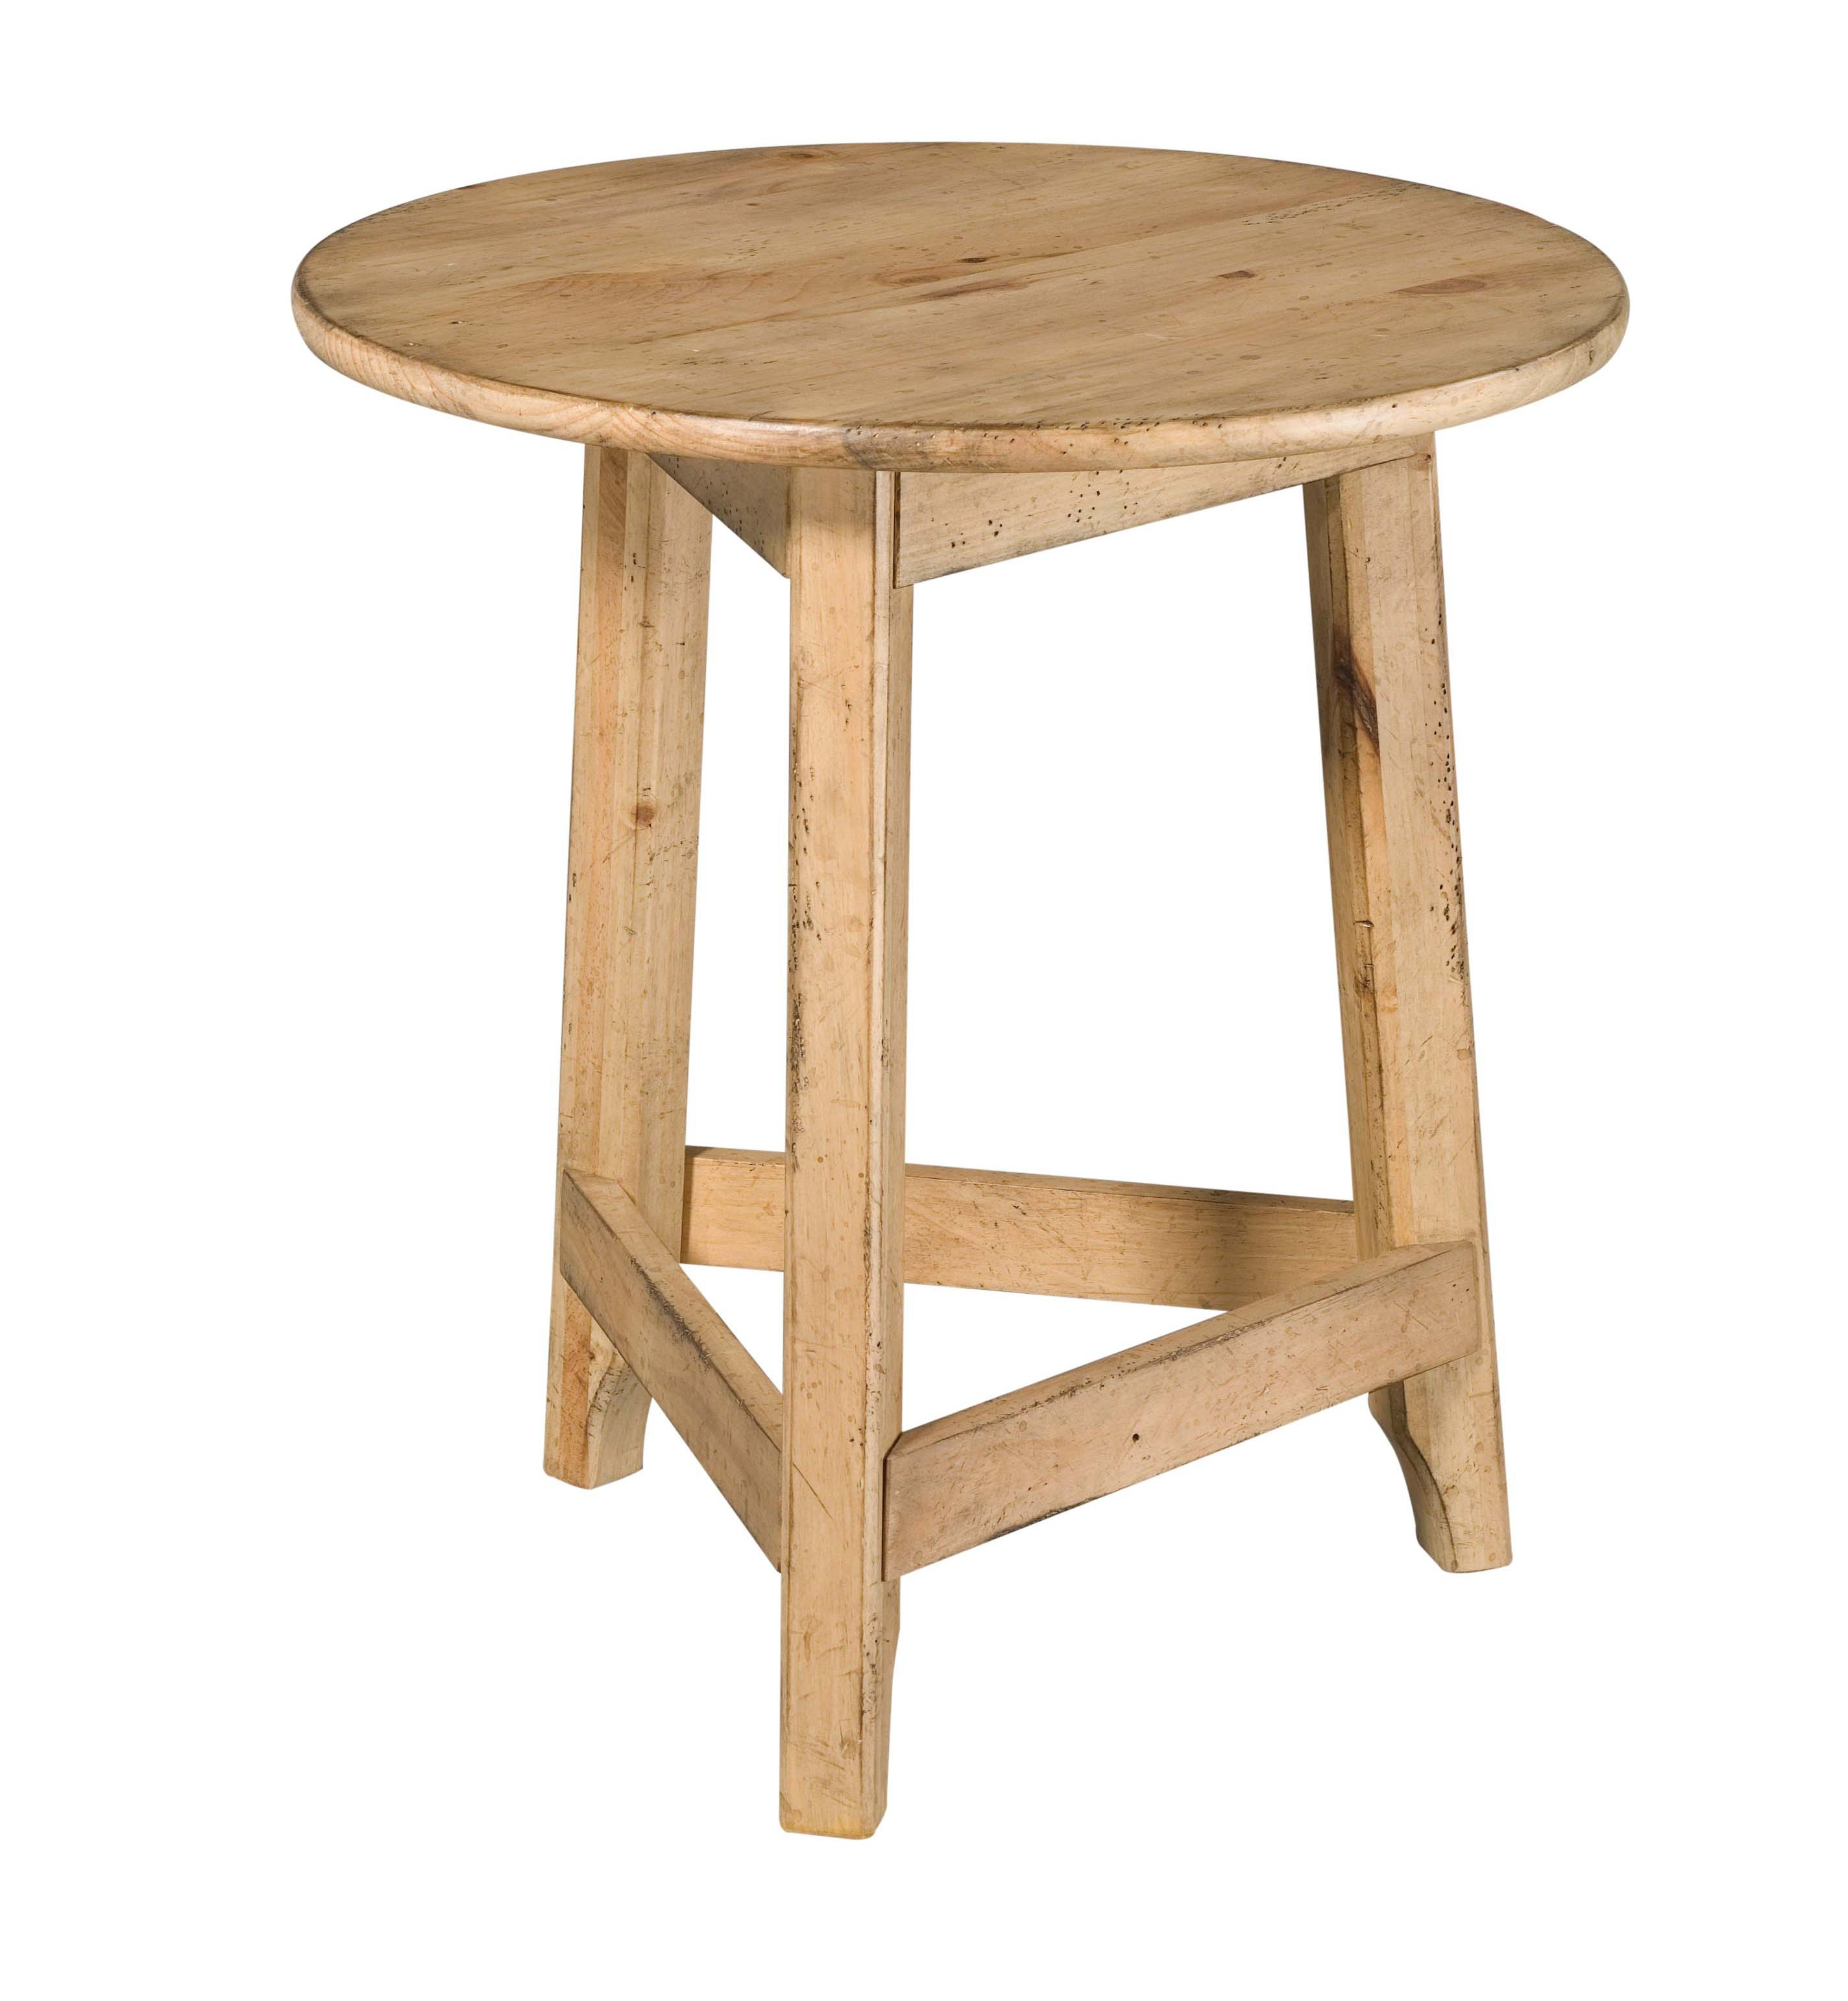 Kincaid Furniture Homecoming Round Accent Table - Item Number: 33-020